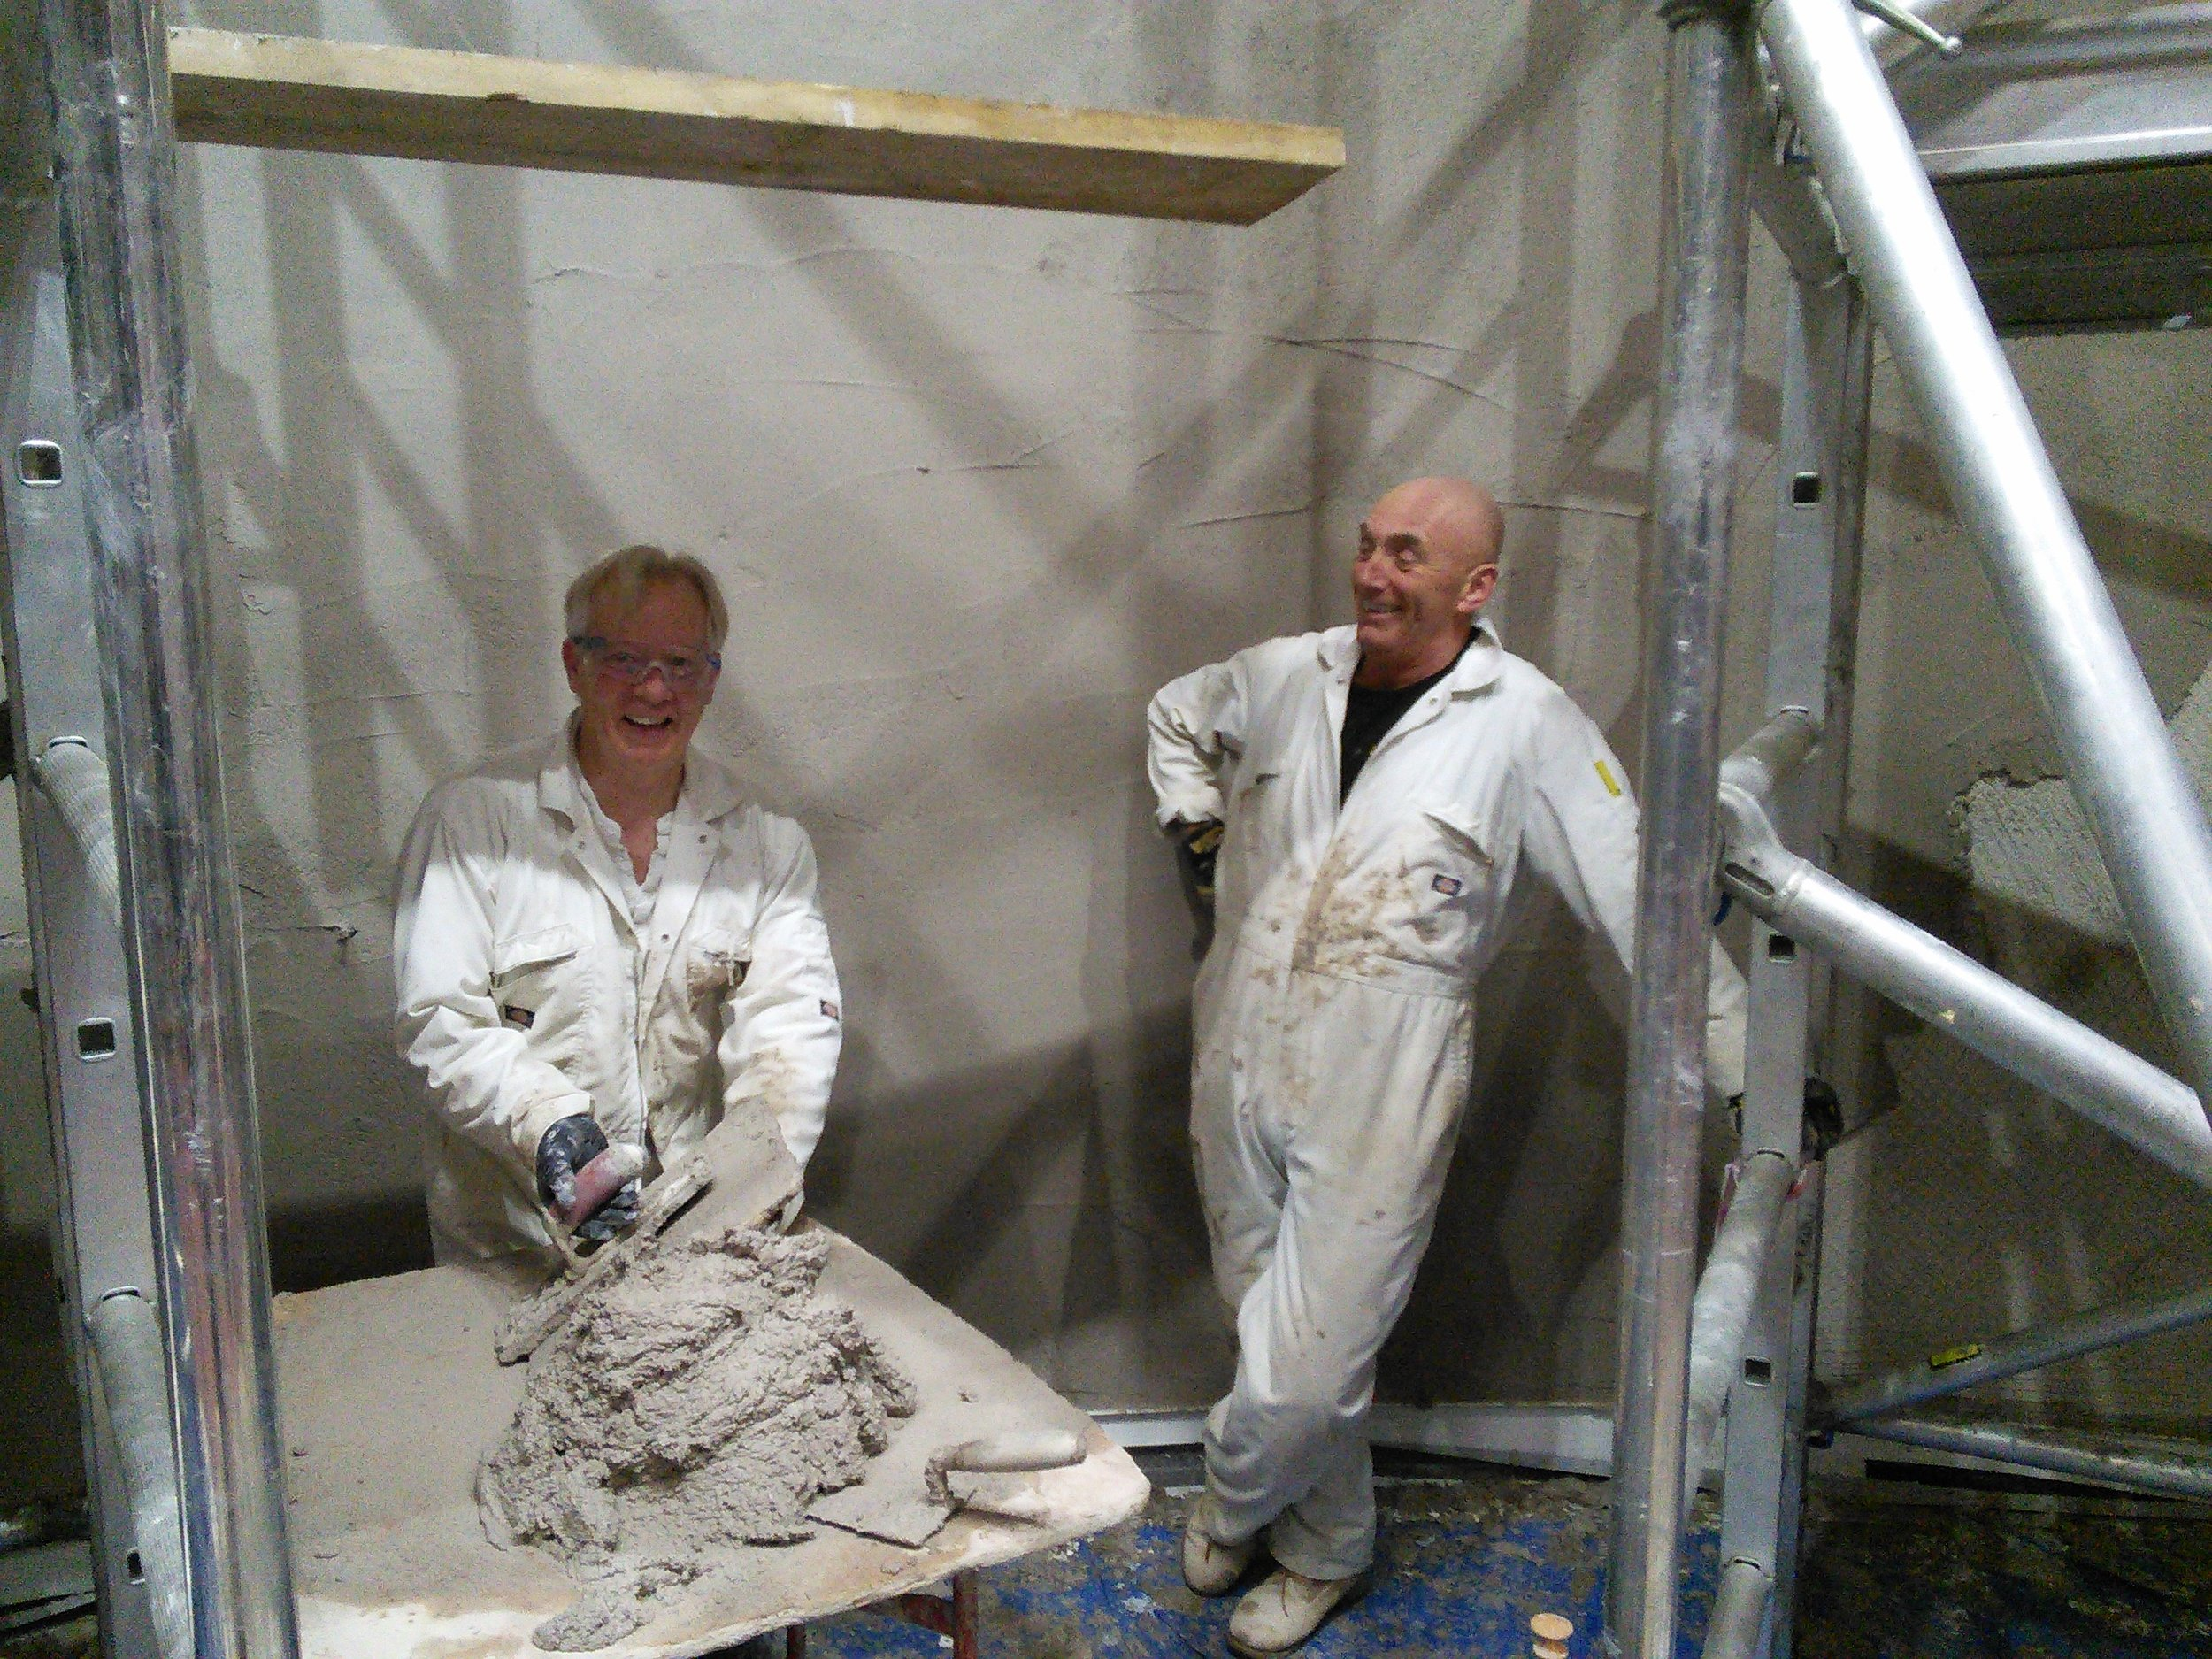 Lee Richards & Co, our wonderful lime plasterers, who spent two weeks over Christmas building up the layers of lime.